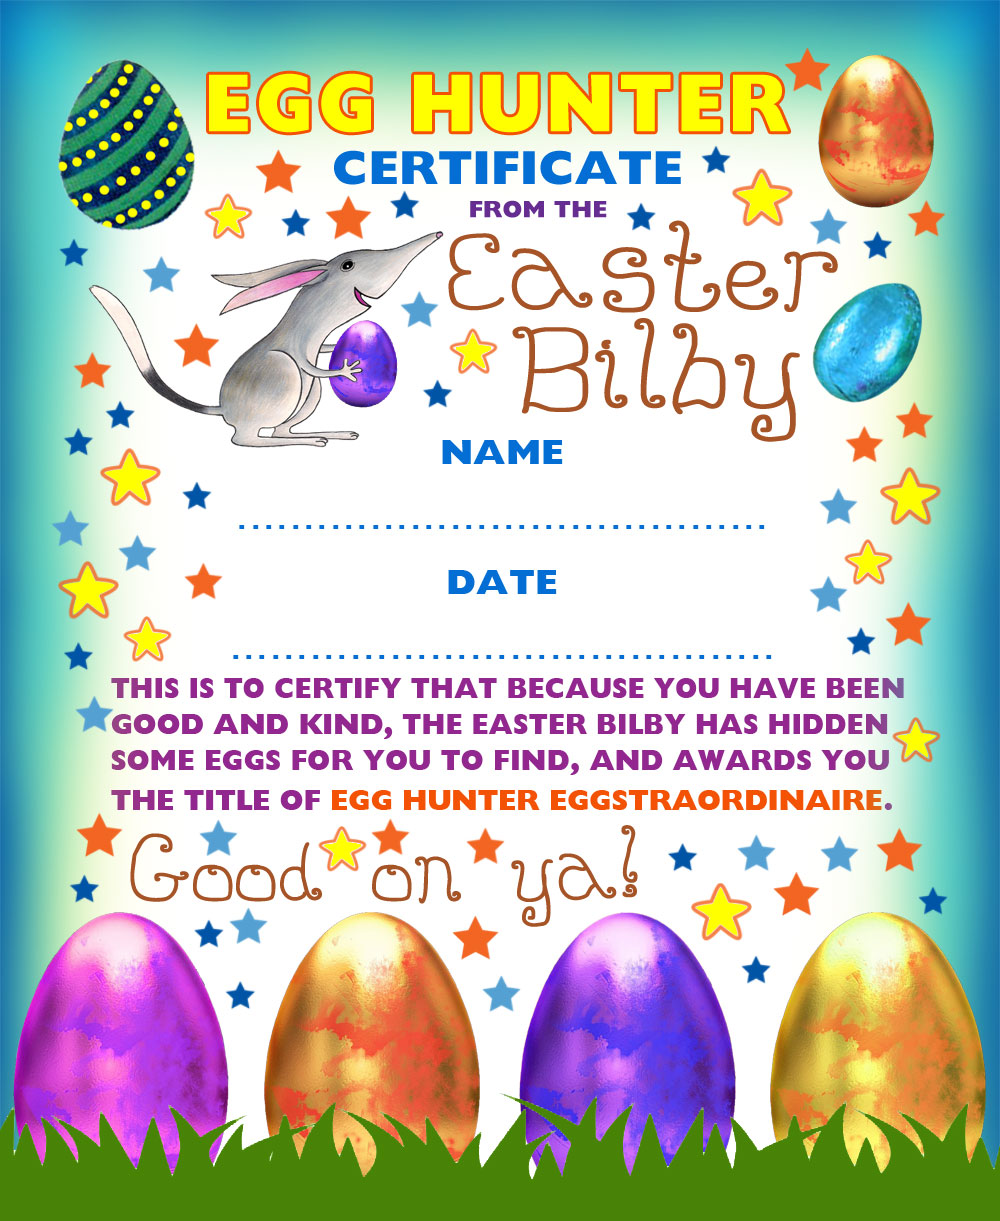 Egg Hunting Certificate from the Easter Bilby